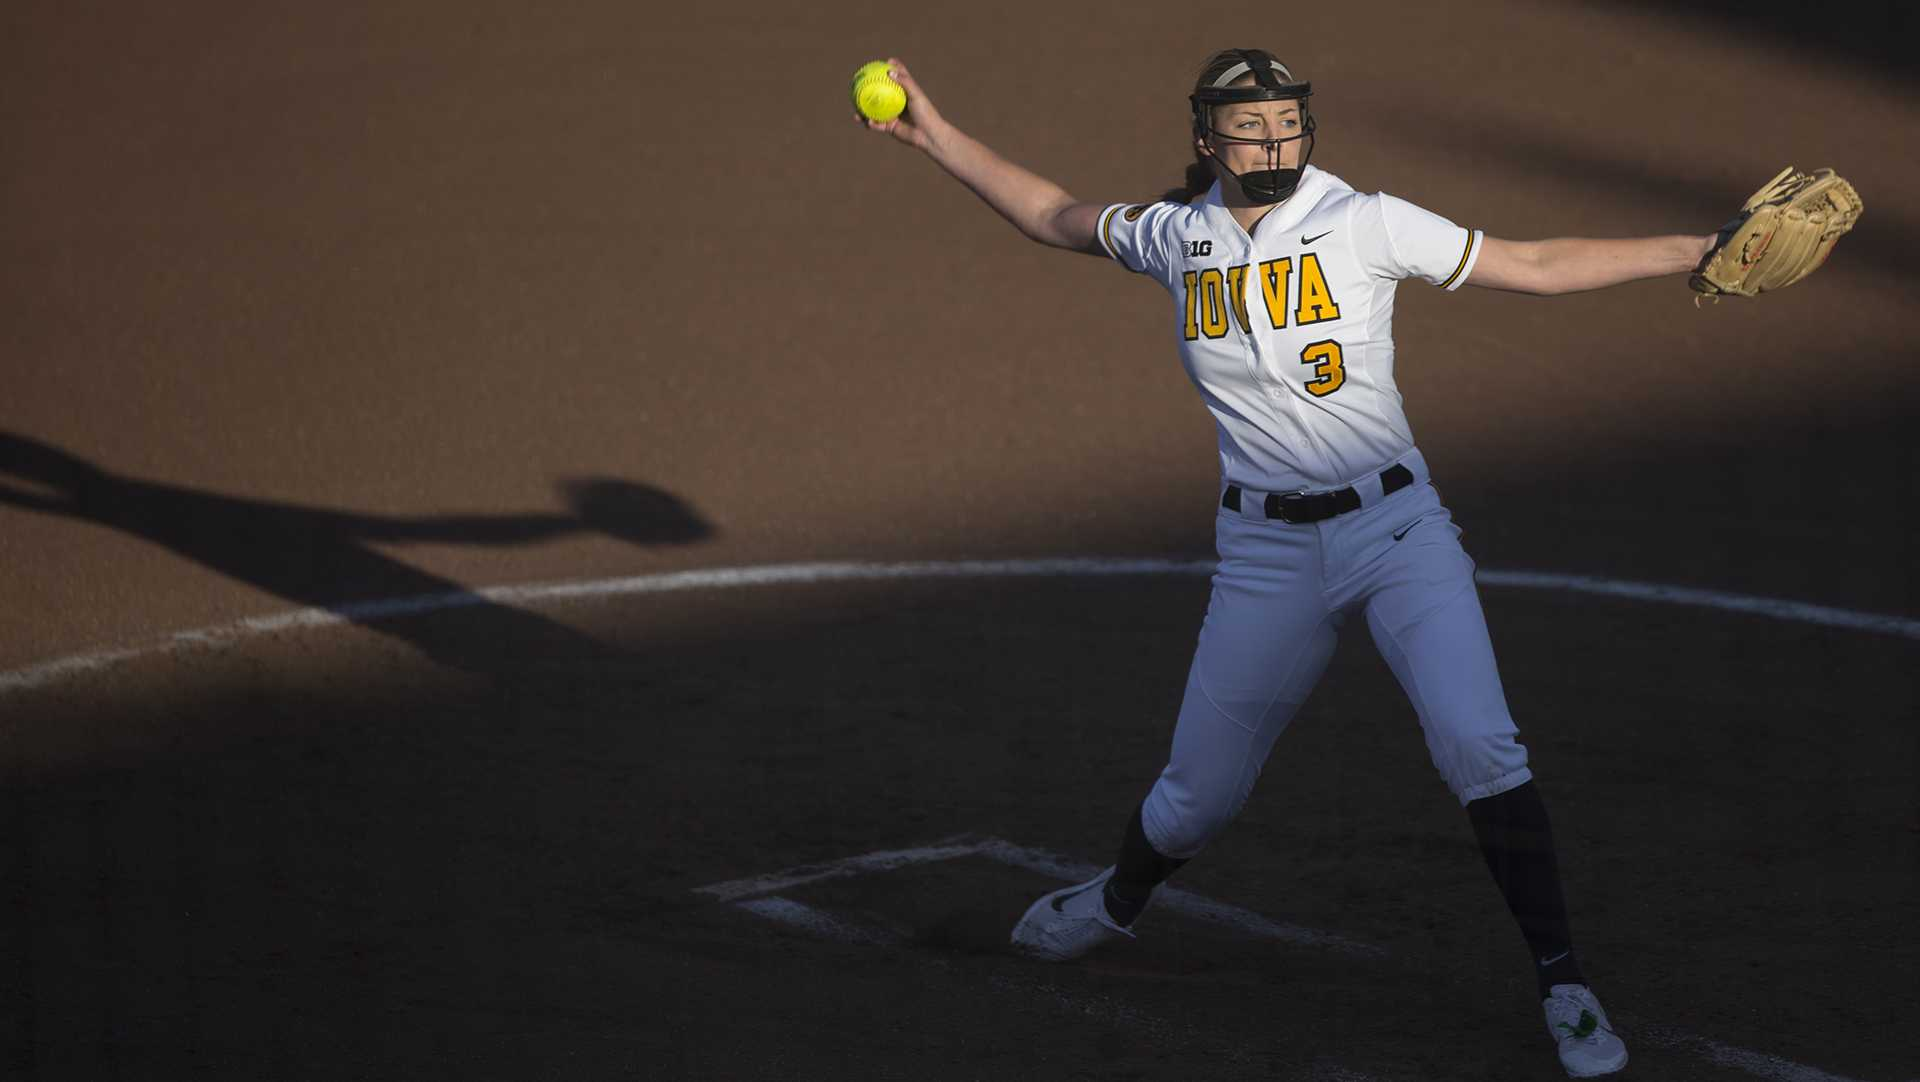 Iowa pitcher Allison Doocy winds up during a softball game against Valparaiso at Bob Pearl Field in Iowa City on Friday, March 17, 2017. The Hawkeyes defeated the Crusaders, 3-0. (The Daily Iowan/Joseph Cress)